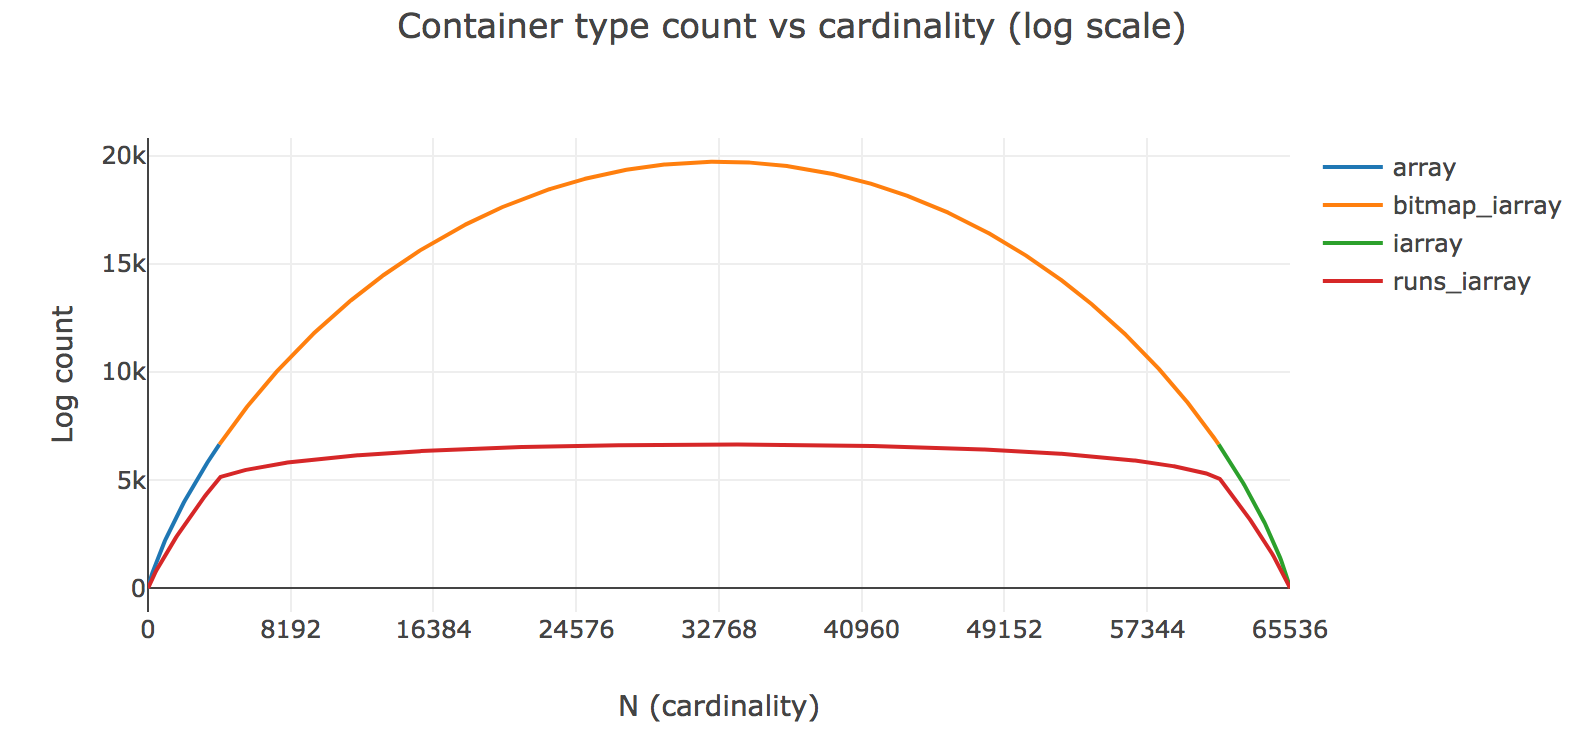 Container count vs cardinality